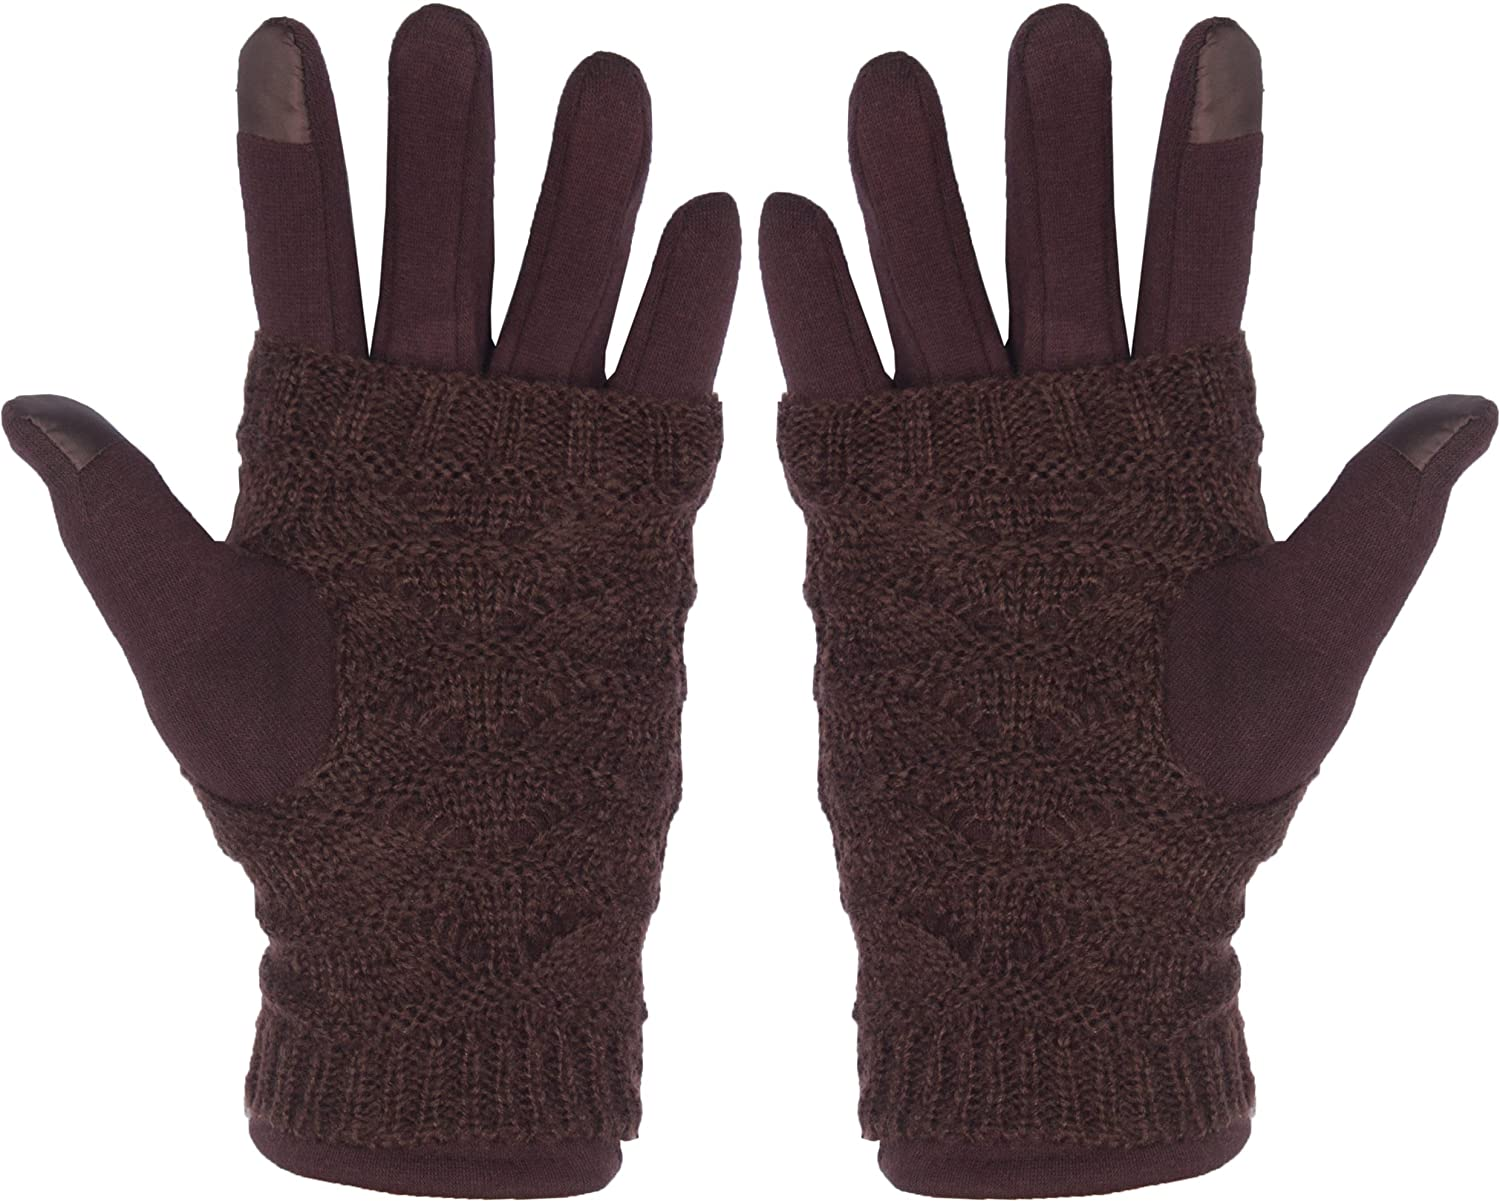 DRY77 Women Fashion Winter Fur Lining Smart Phone Screen Gloves Casual Cold